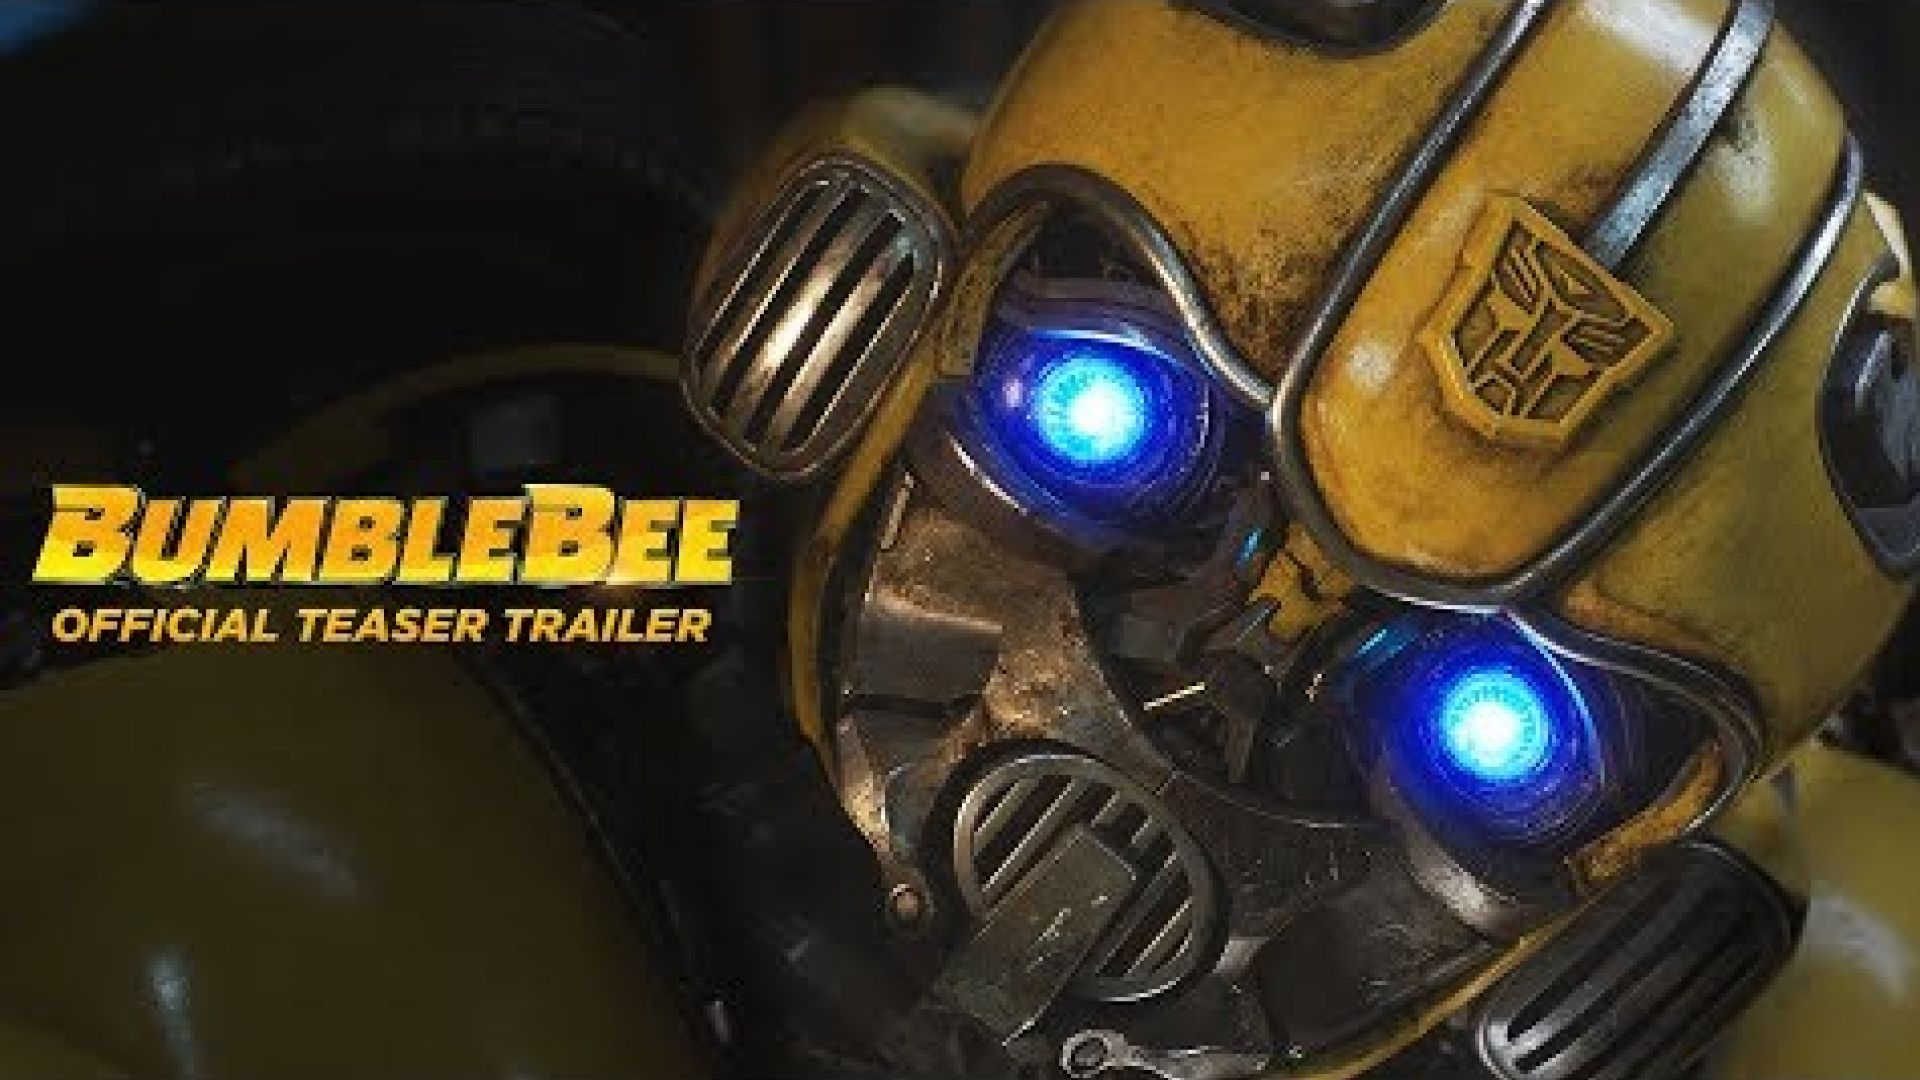 'Bumblebee' Teaser Trailer Paramount Pictures